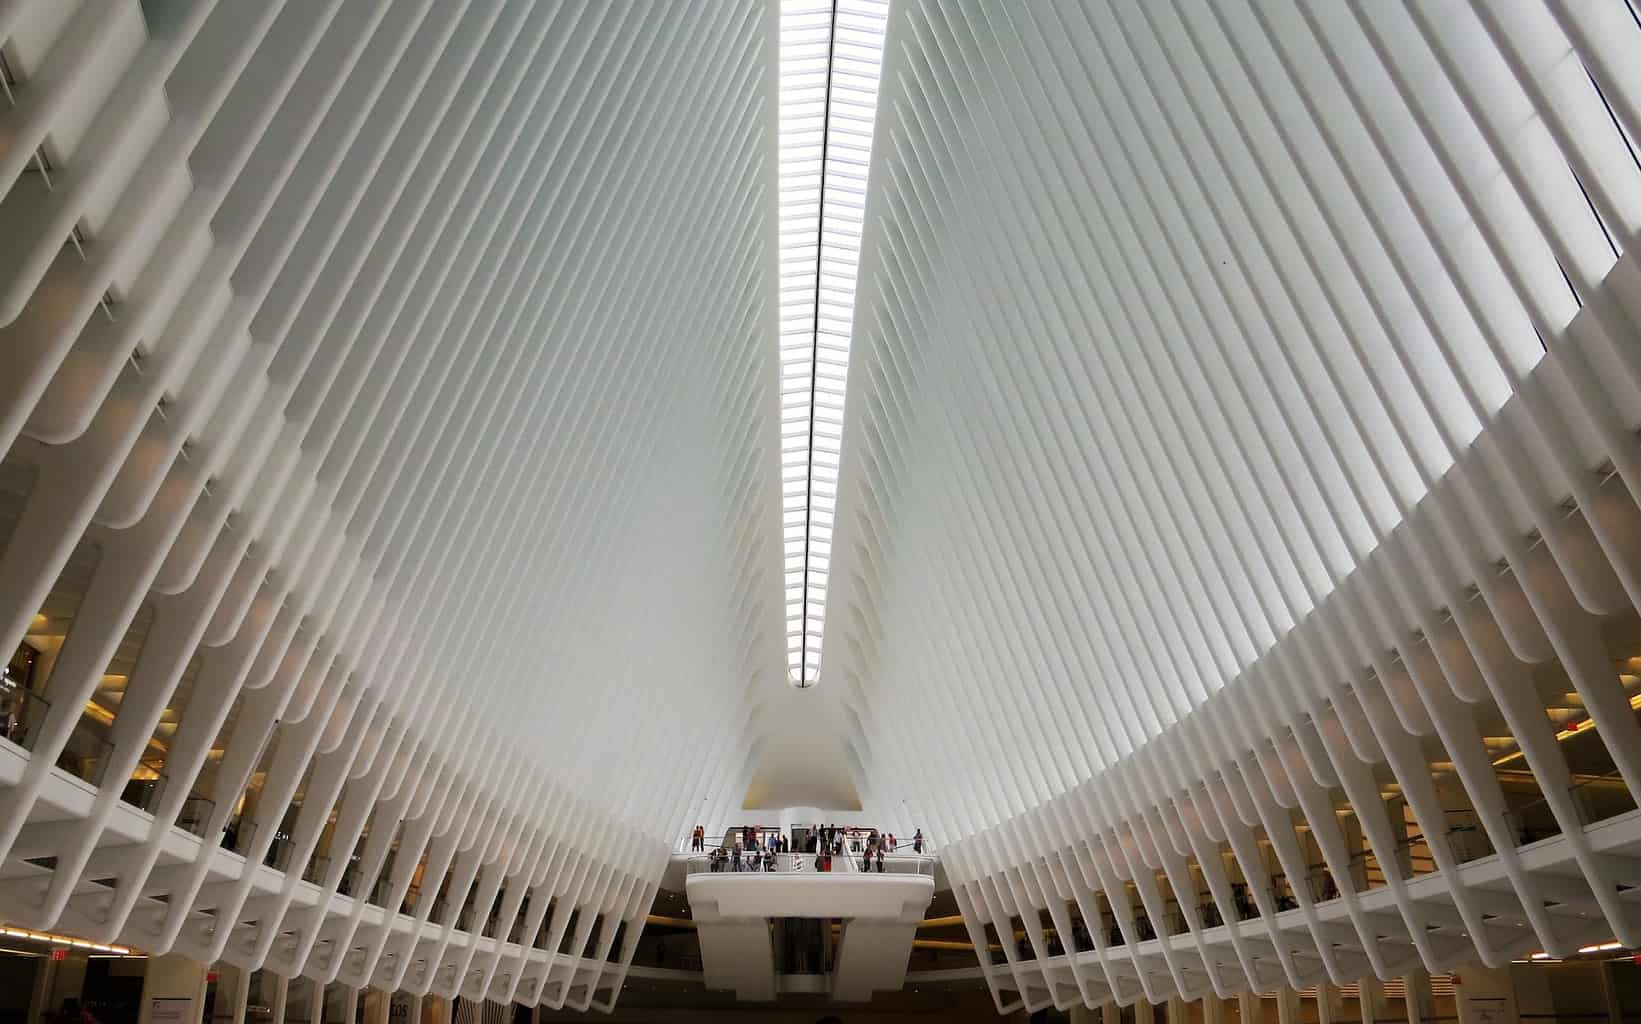 The beautiful modern architecture of the Oculus.